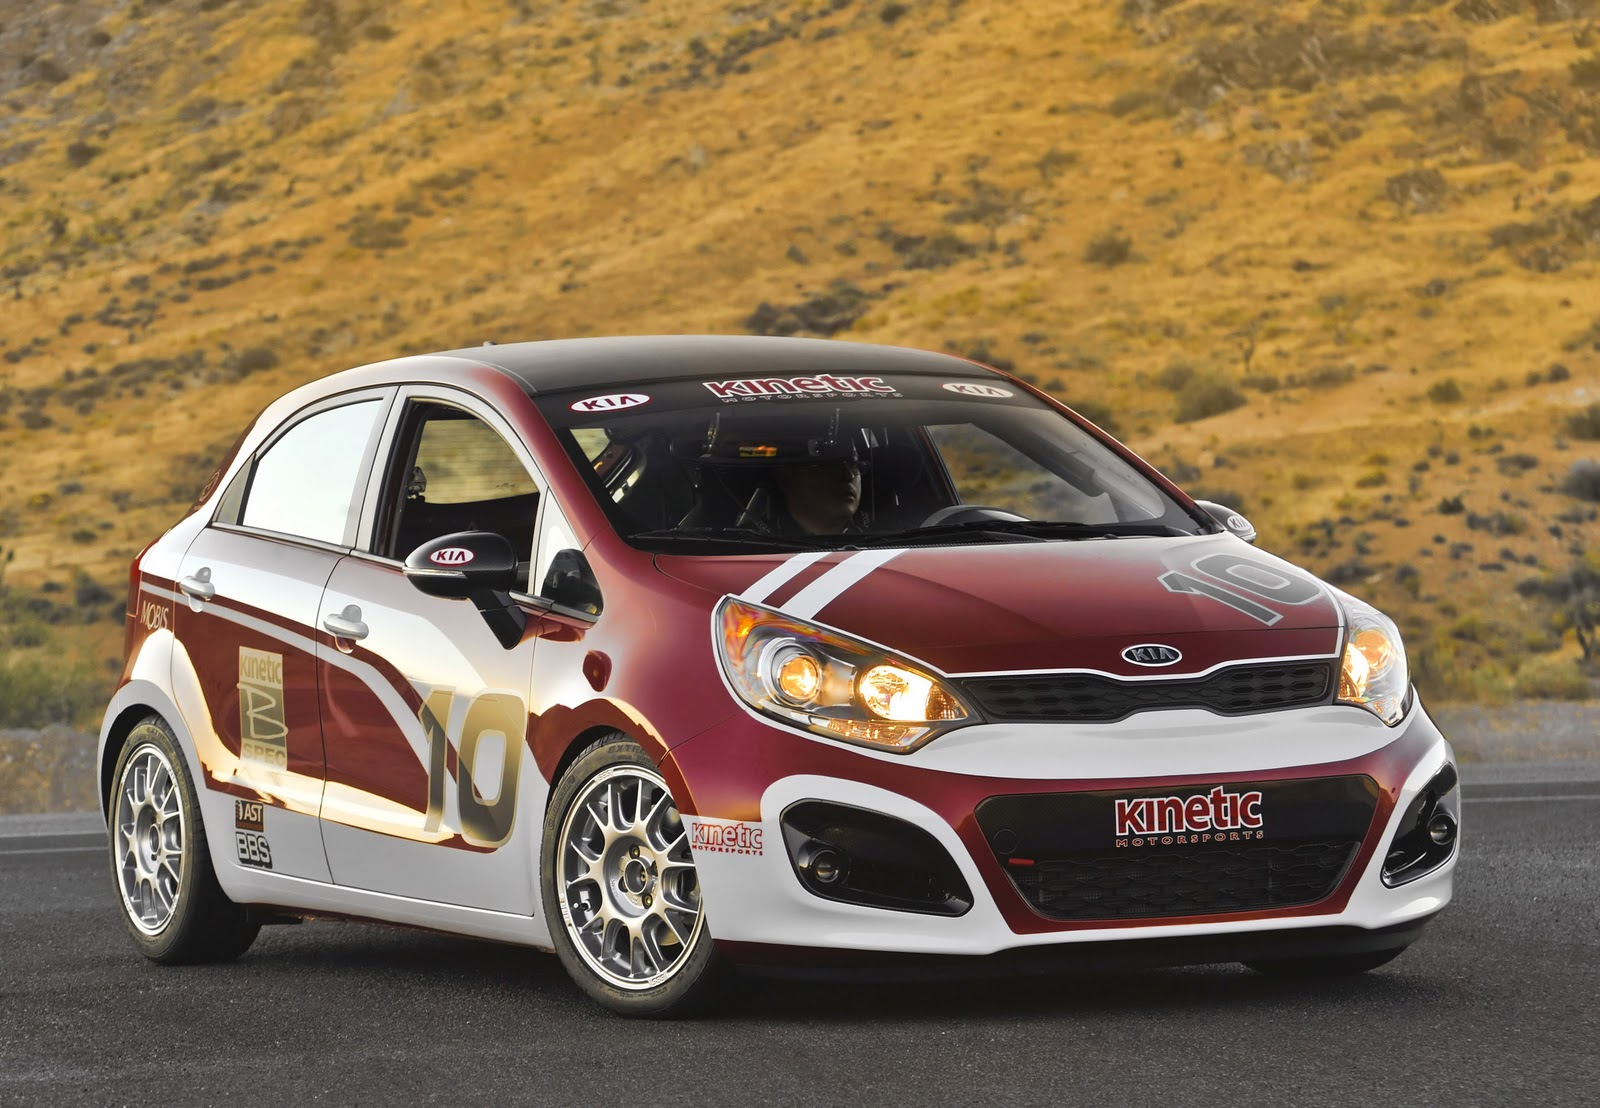 2012 Kia Rio 5 Door B Spec Racer   Sport Cars and Motorcycle News